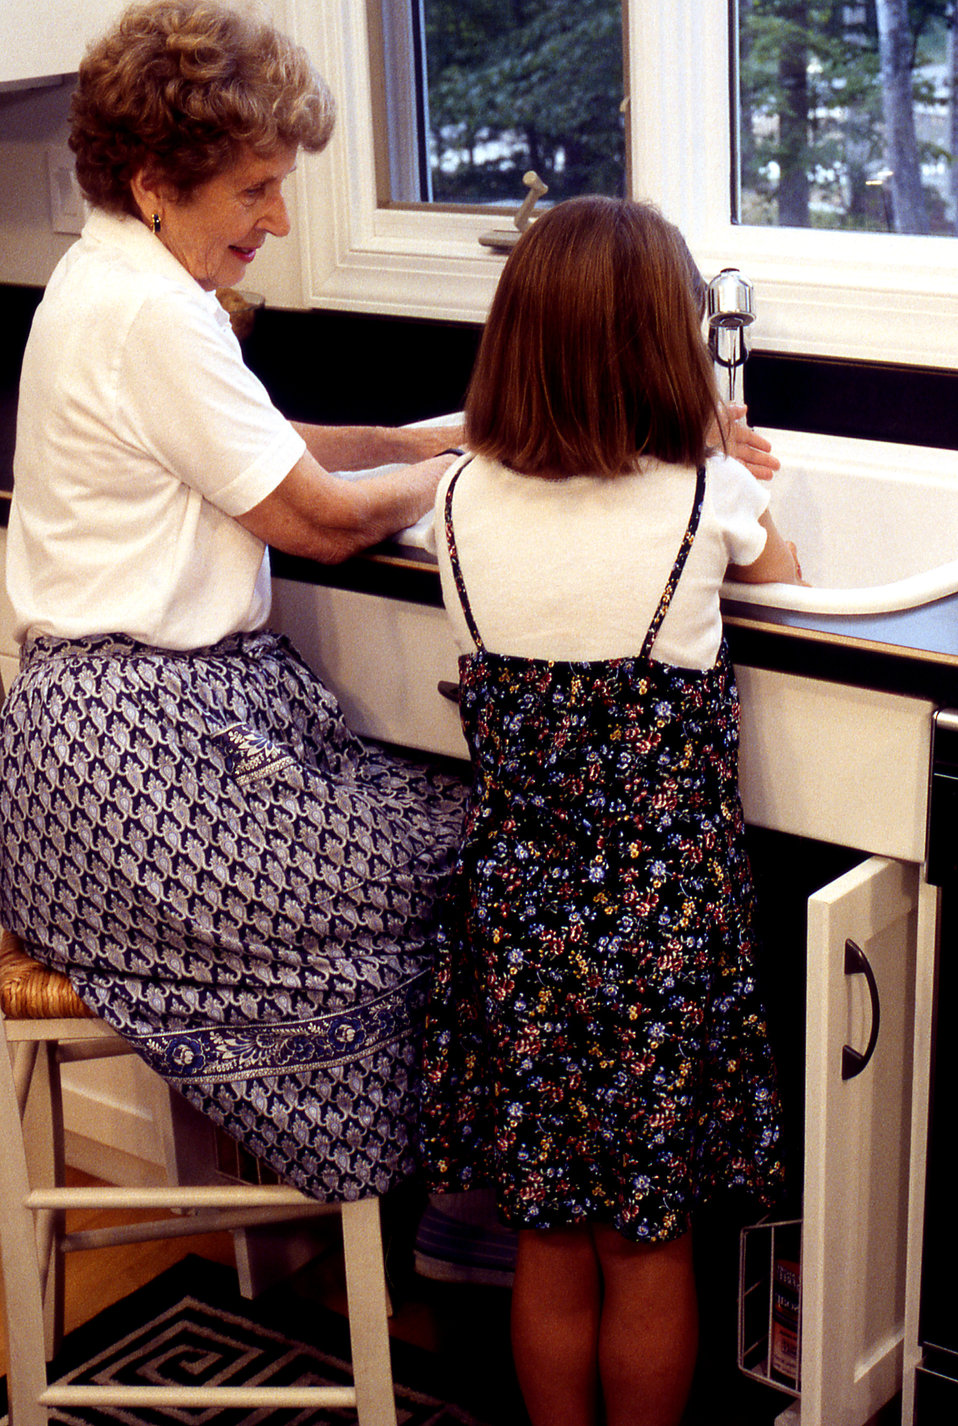 This grandmother and her granddaughter were in a customized kitchen outfitted with adaptable cabinetry, which allowed the elderly woman to p